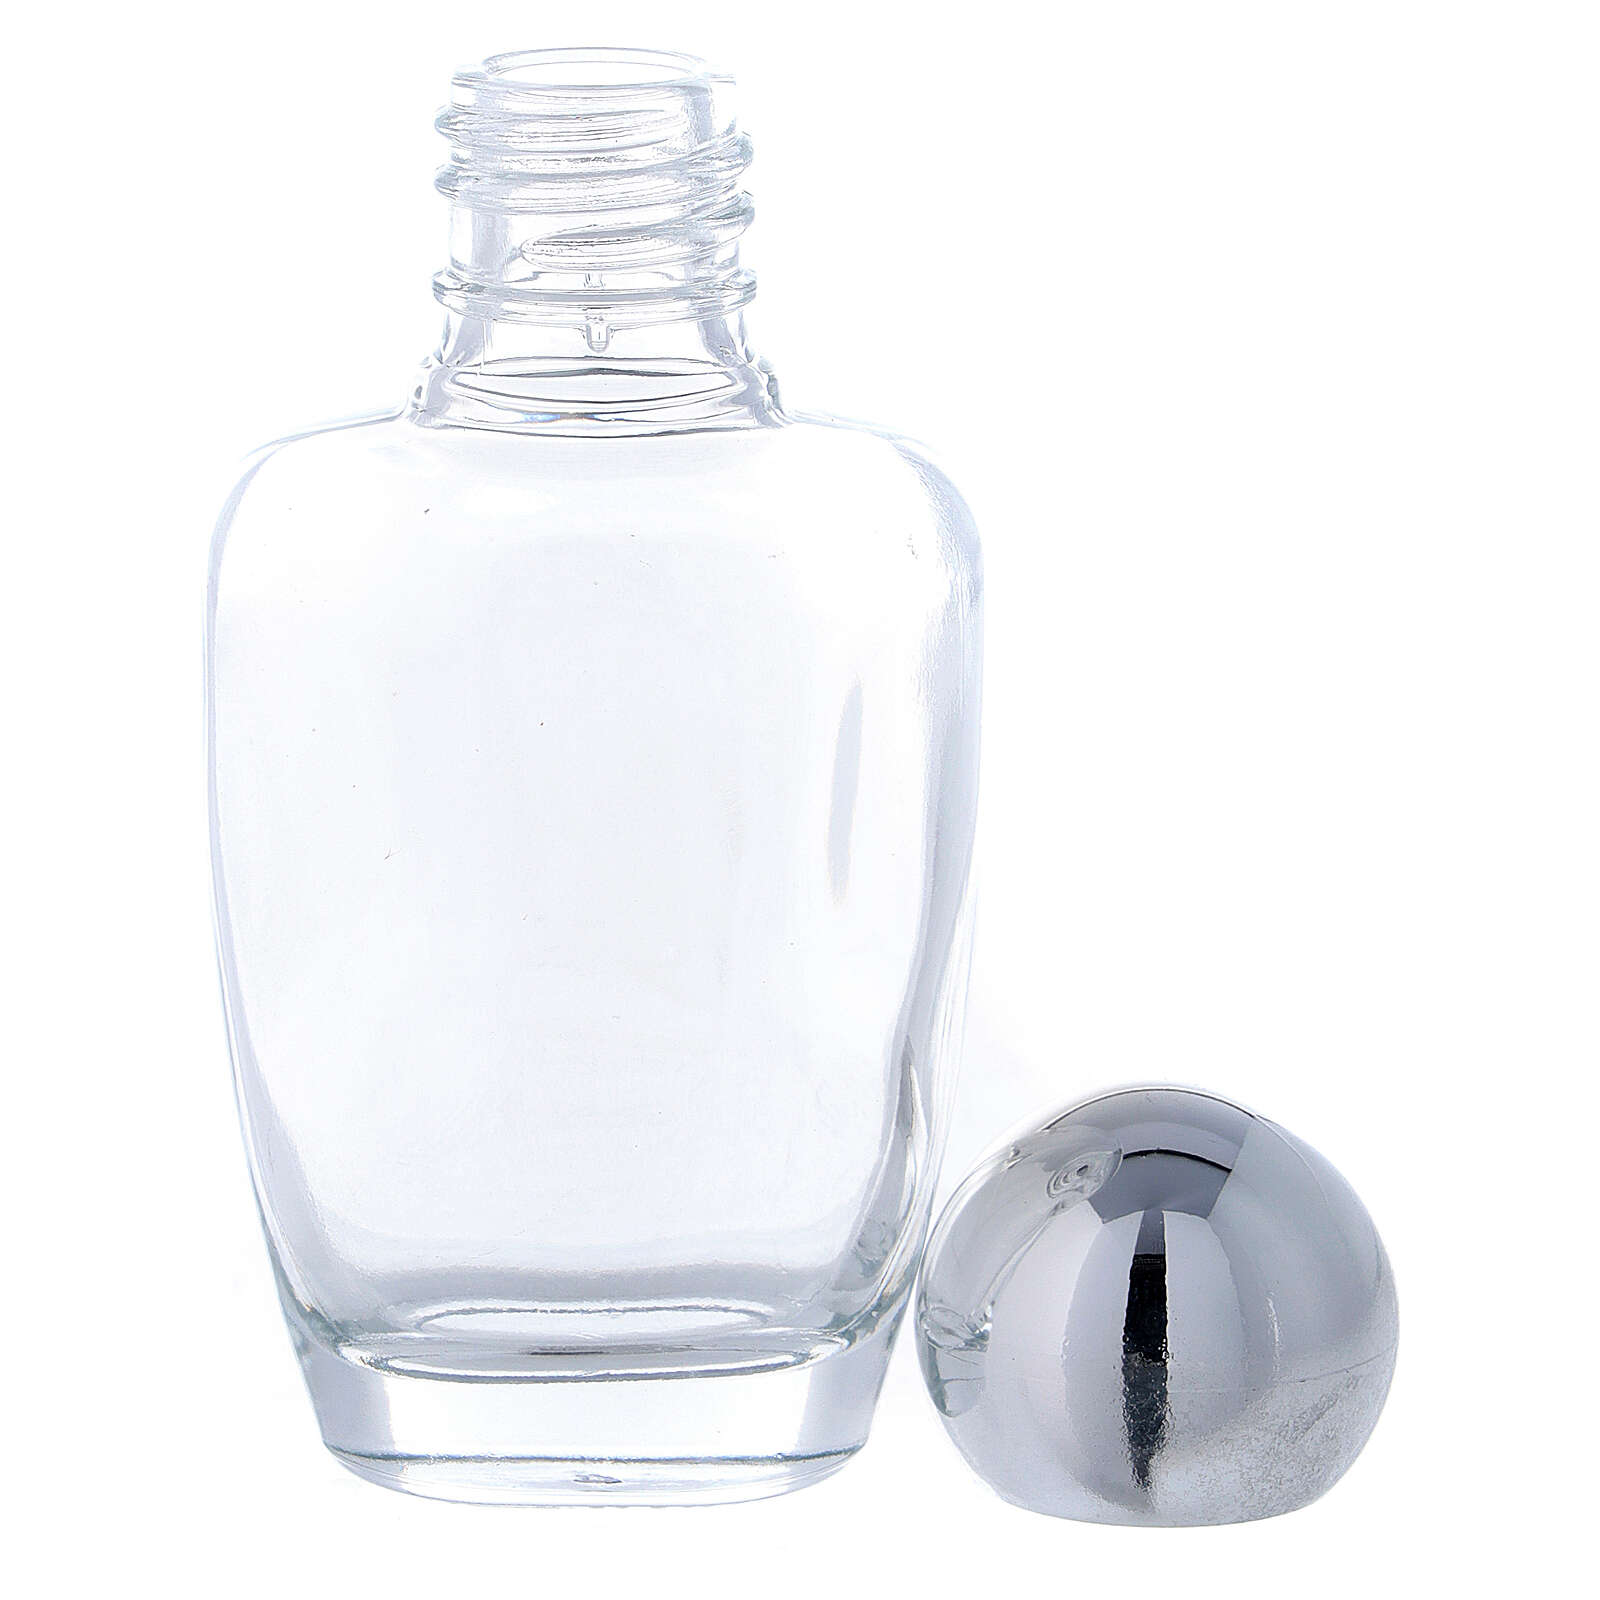 30 ml holy water bottle in glass (50 pieces) 3